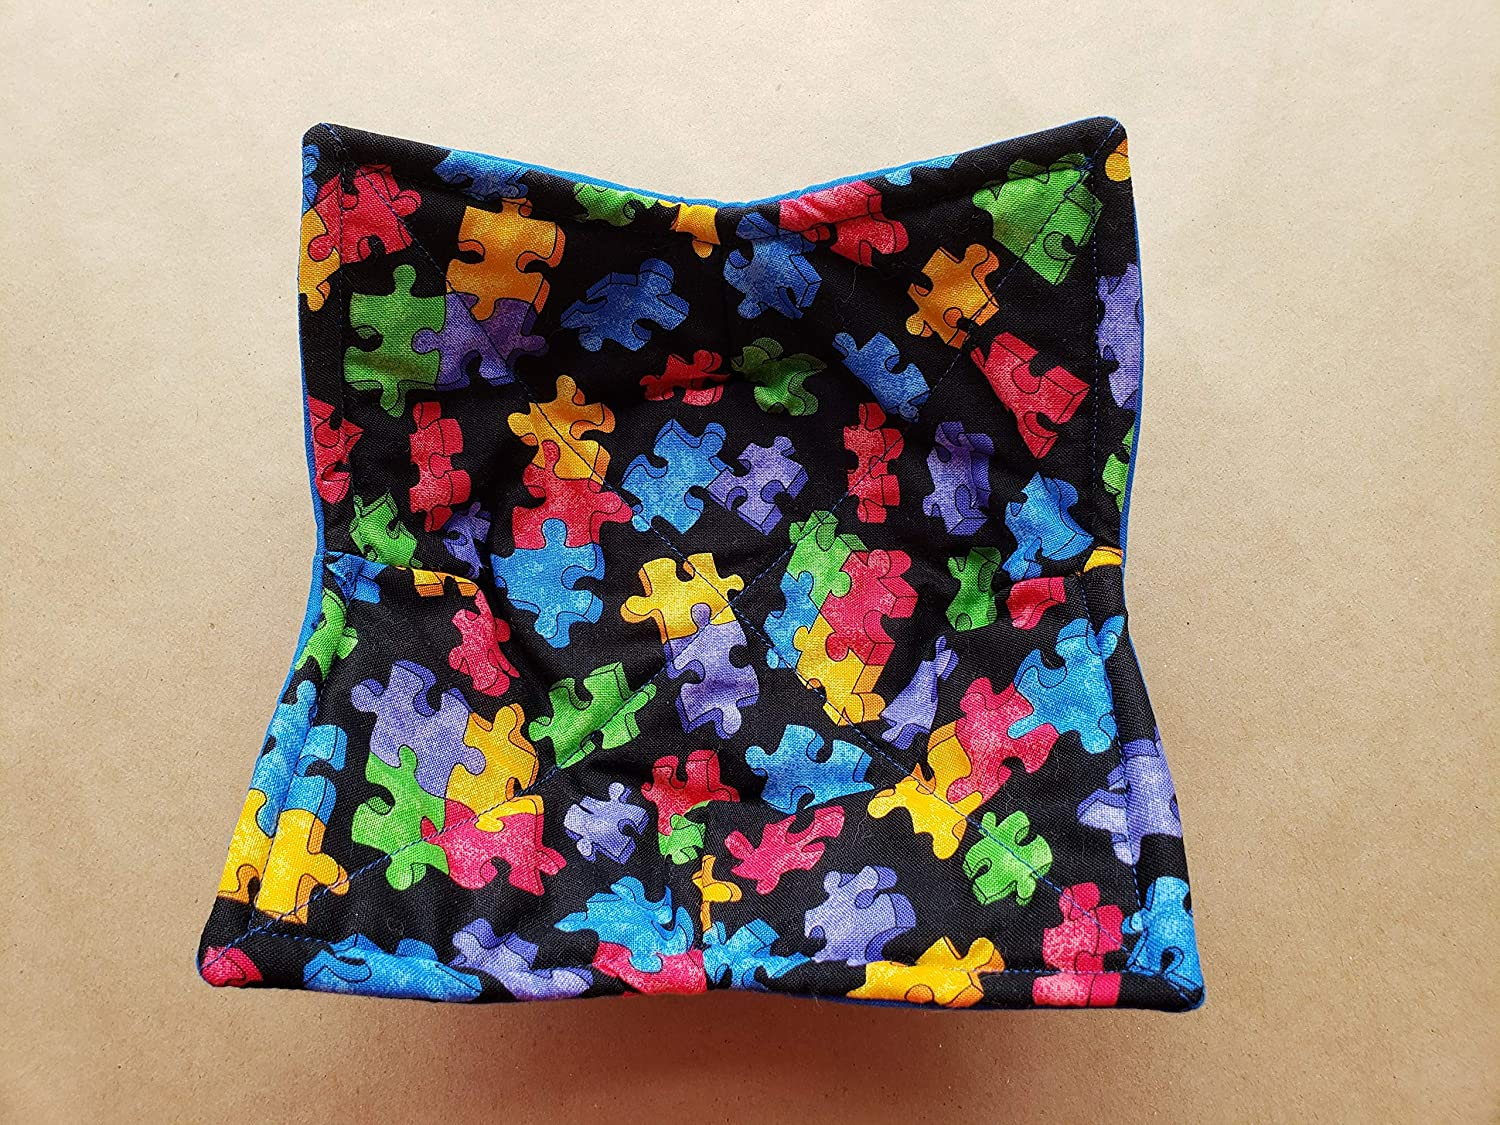 Autism Awareness Microwave Bowl Cozy, Reversible Microwaveable Potholder, Puzzle Piece Bowl Holder, Jigsaw Puzzle Themed Gifts, Primary Color Kitchen Linens, Teacher Gifts, Bowl Buddy, GIfts Under 10